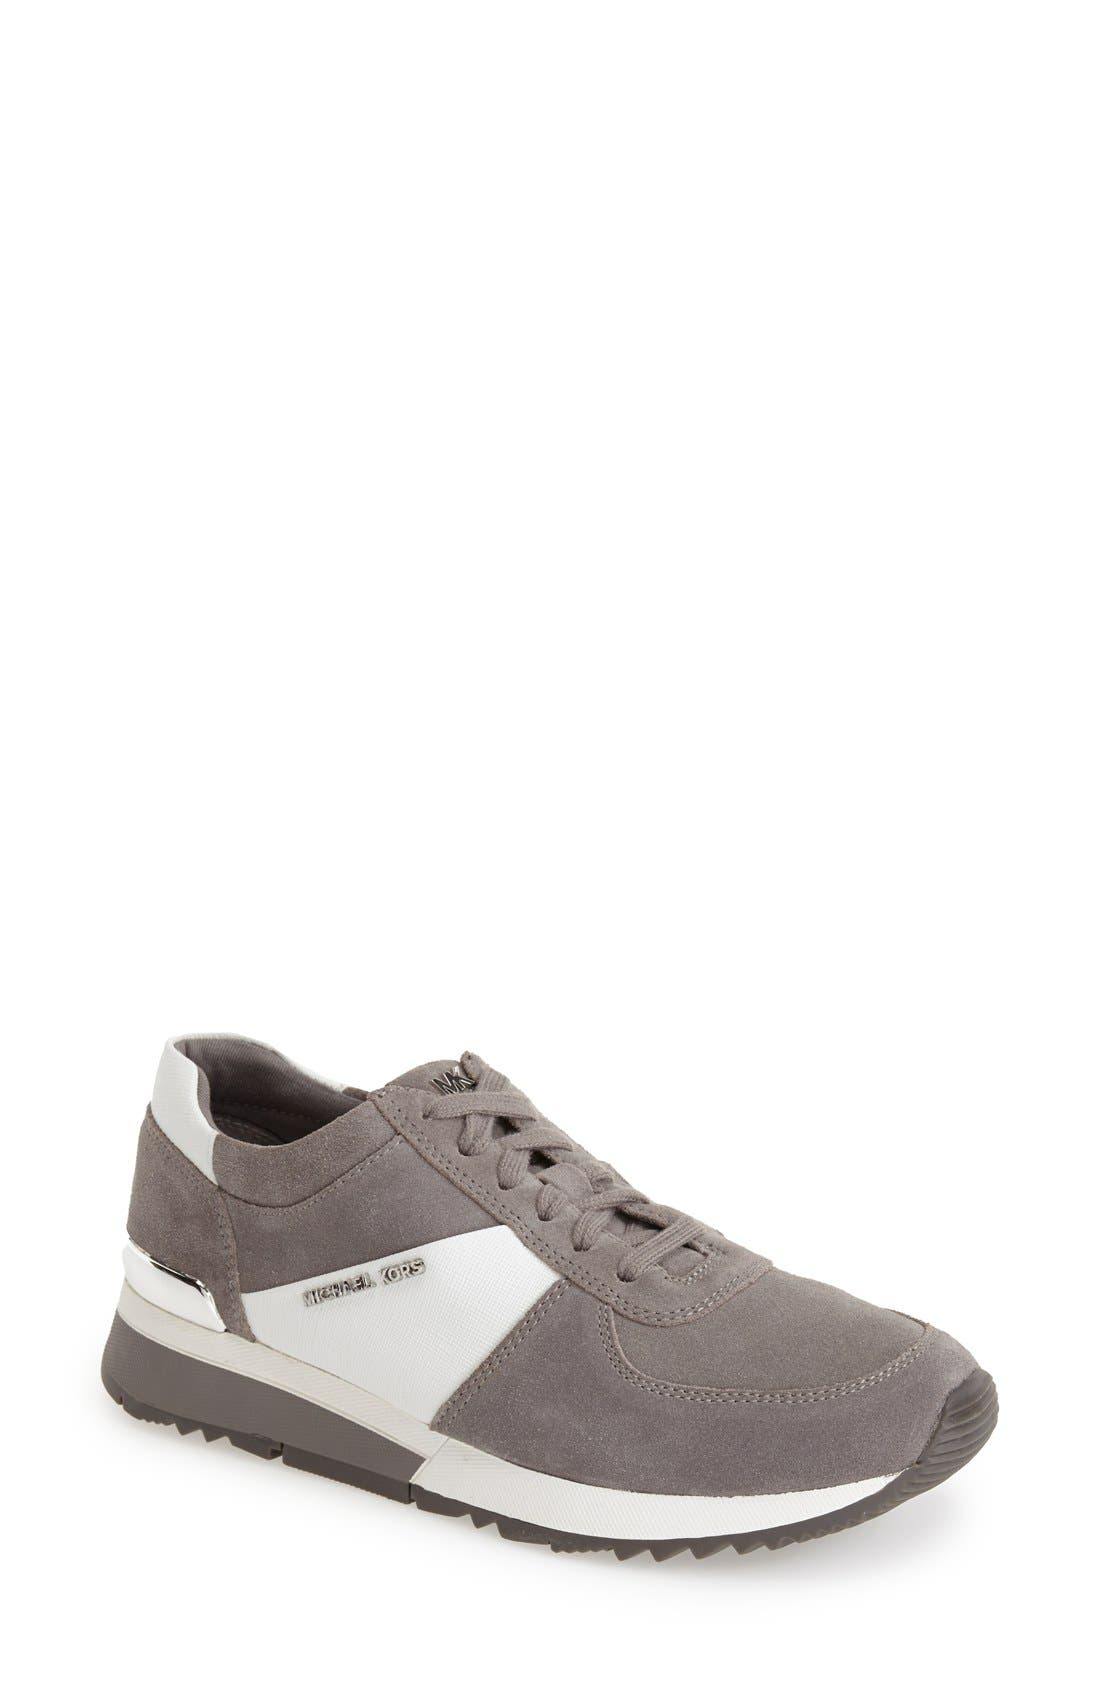 Alternate Image 1 Selected - MICHAEL Michael Kors 'Allie' Sneaker (Women)